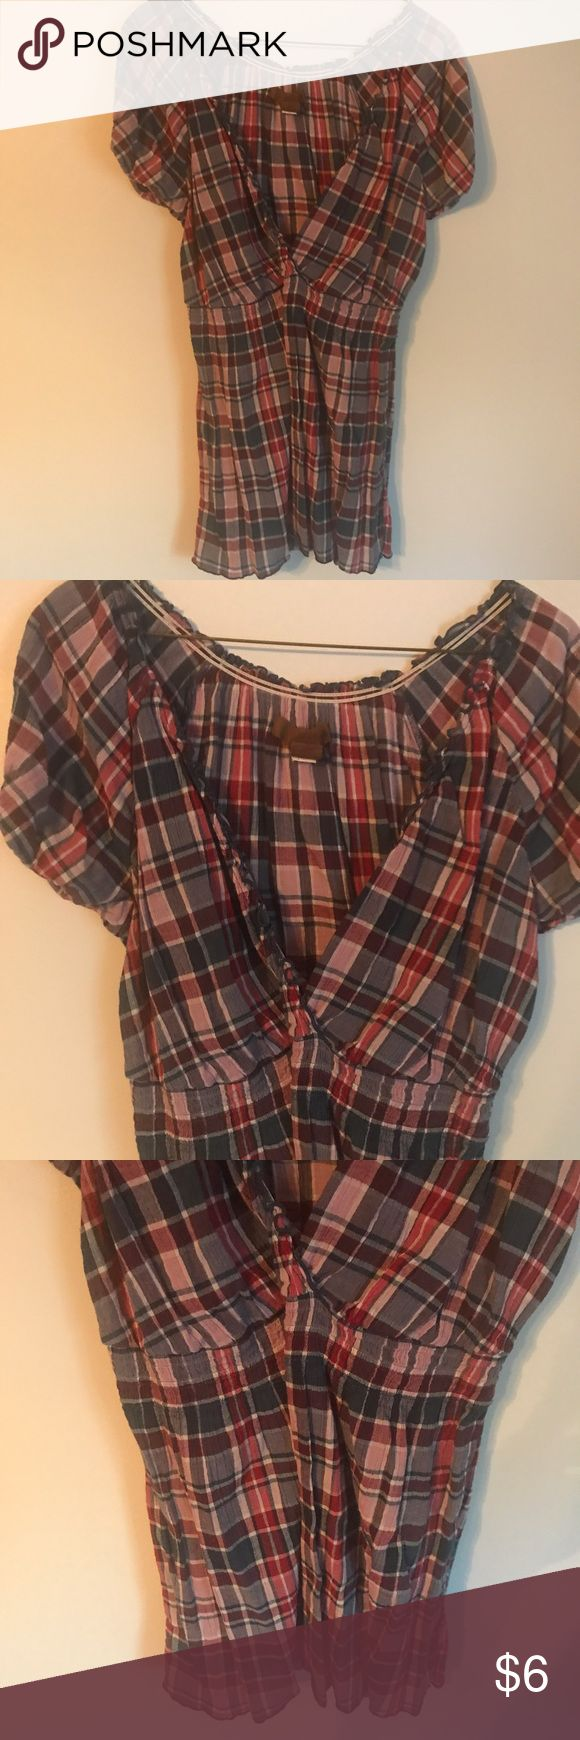 Old Navy Maternity Plaid Summer Short Sleeve Shirt Excellent condition. Cute plaid pattern. Old Navy Tops